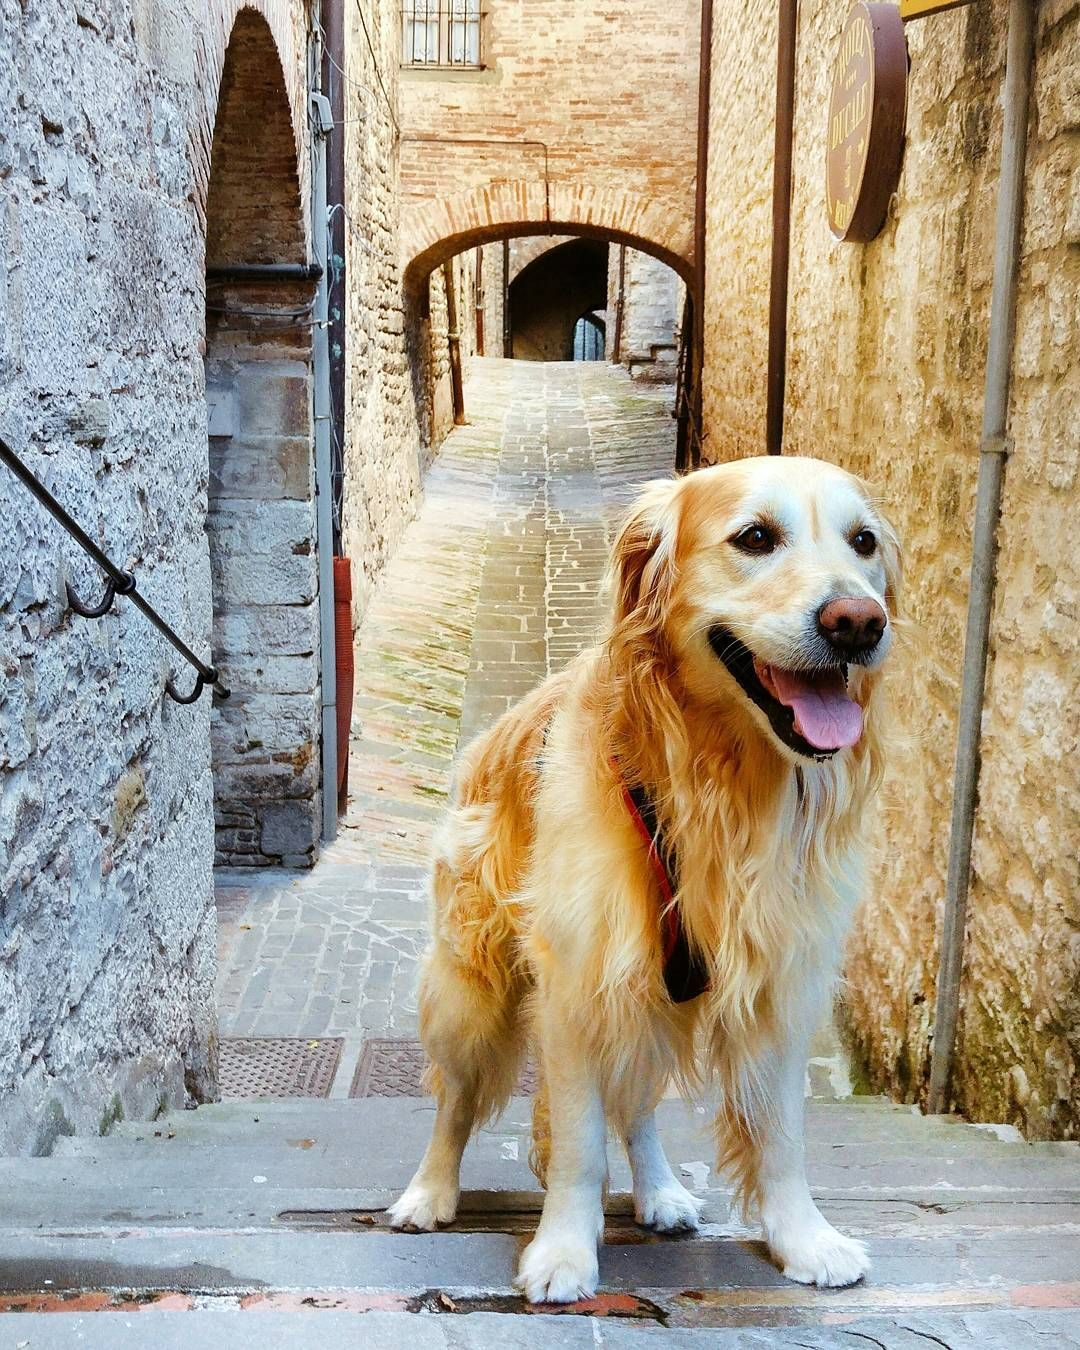 After A Long Walking Where Are We Going Come On Friends Gubbio Dog Dogs Puppy Golden Goldenretriever Forest T Golden Retriever Puppies Dogs